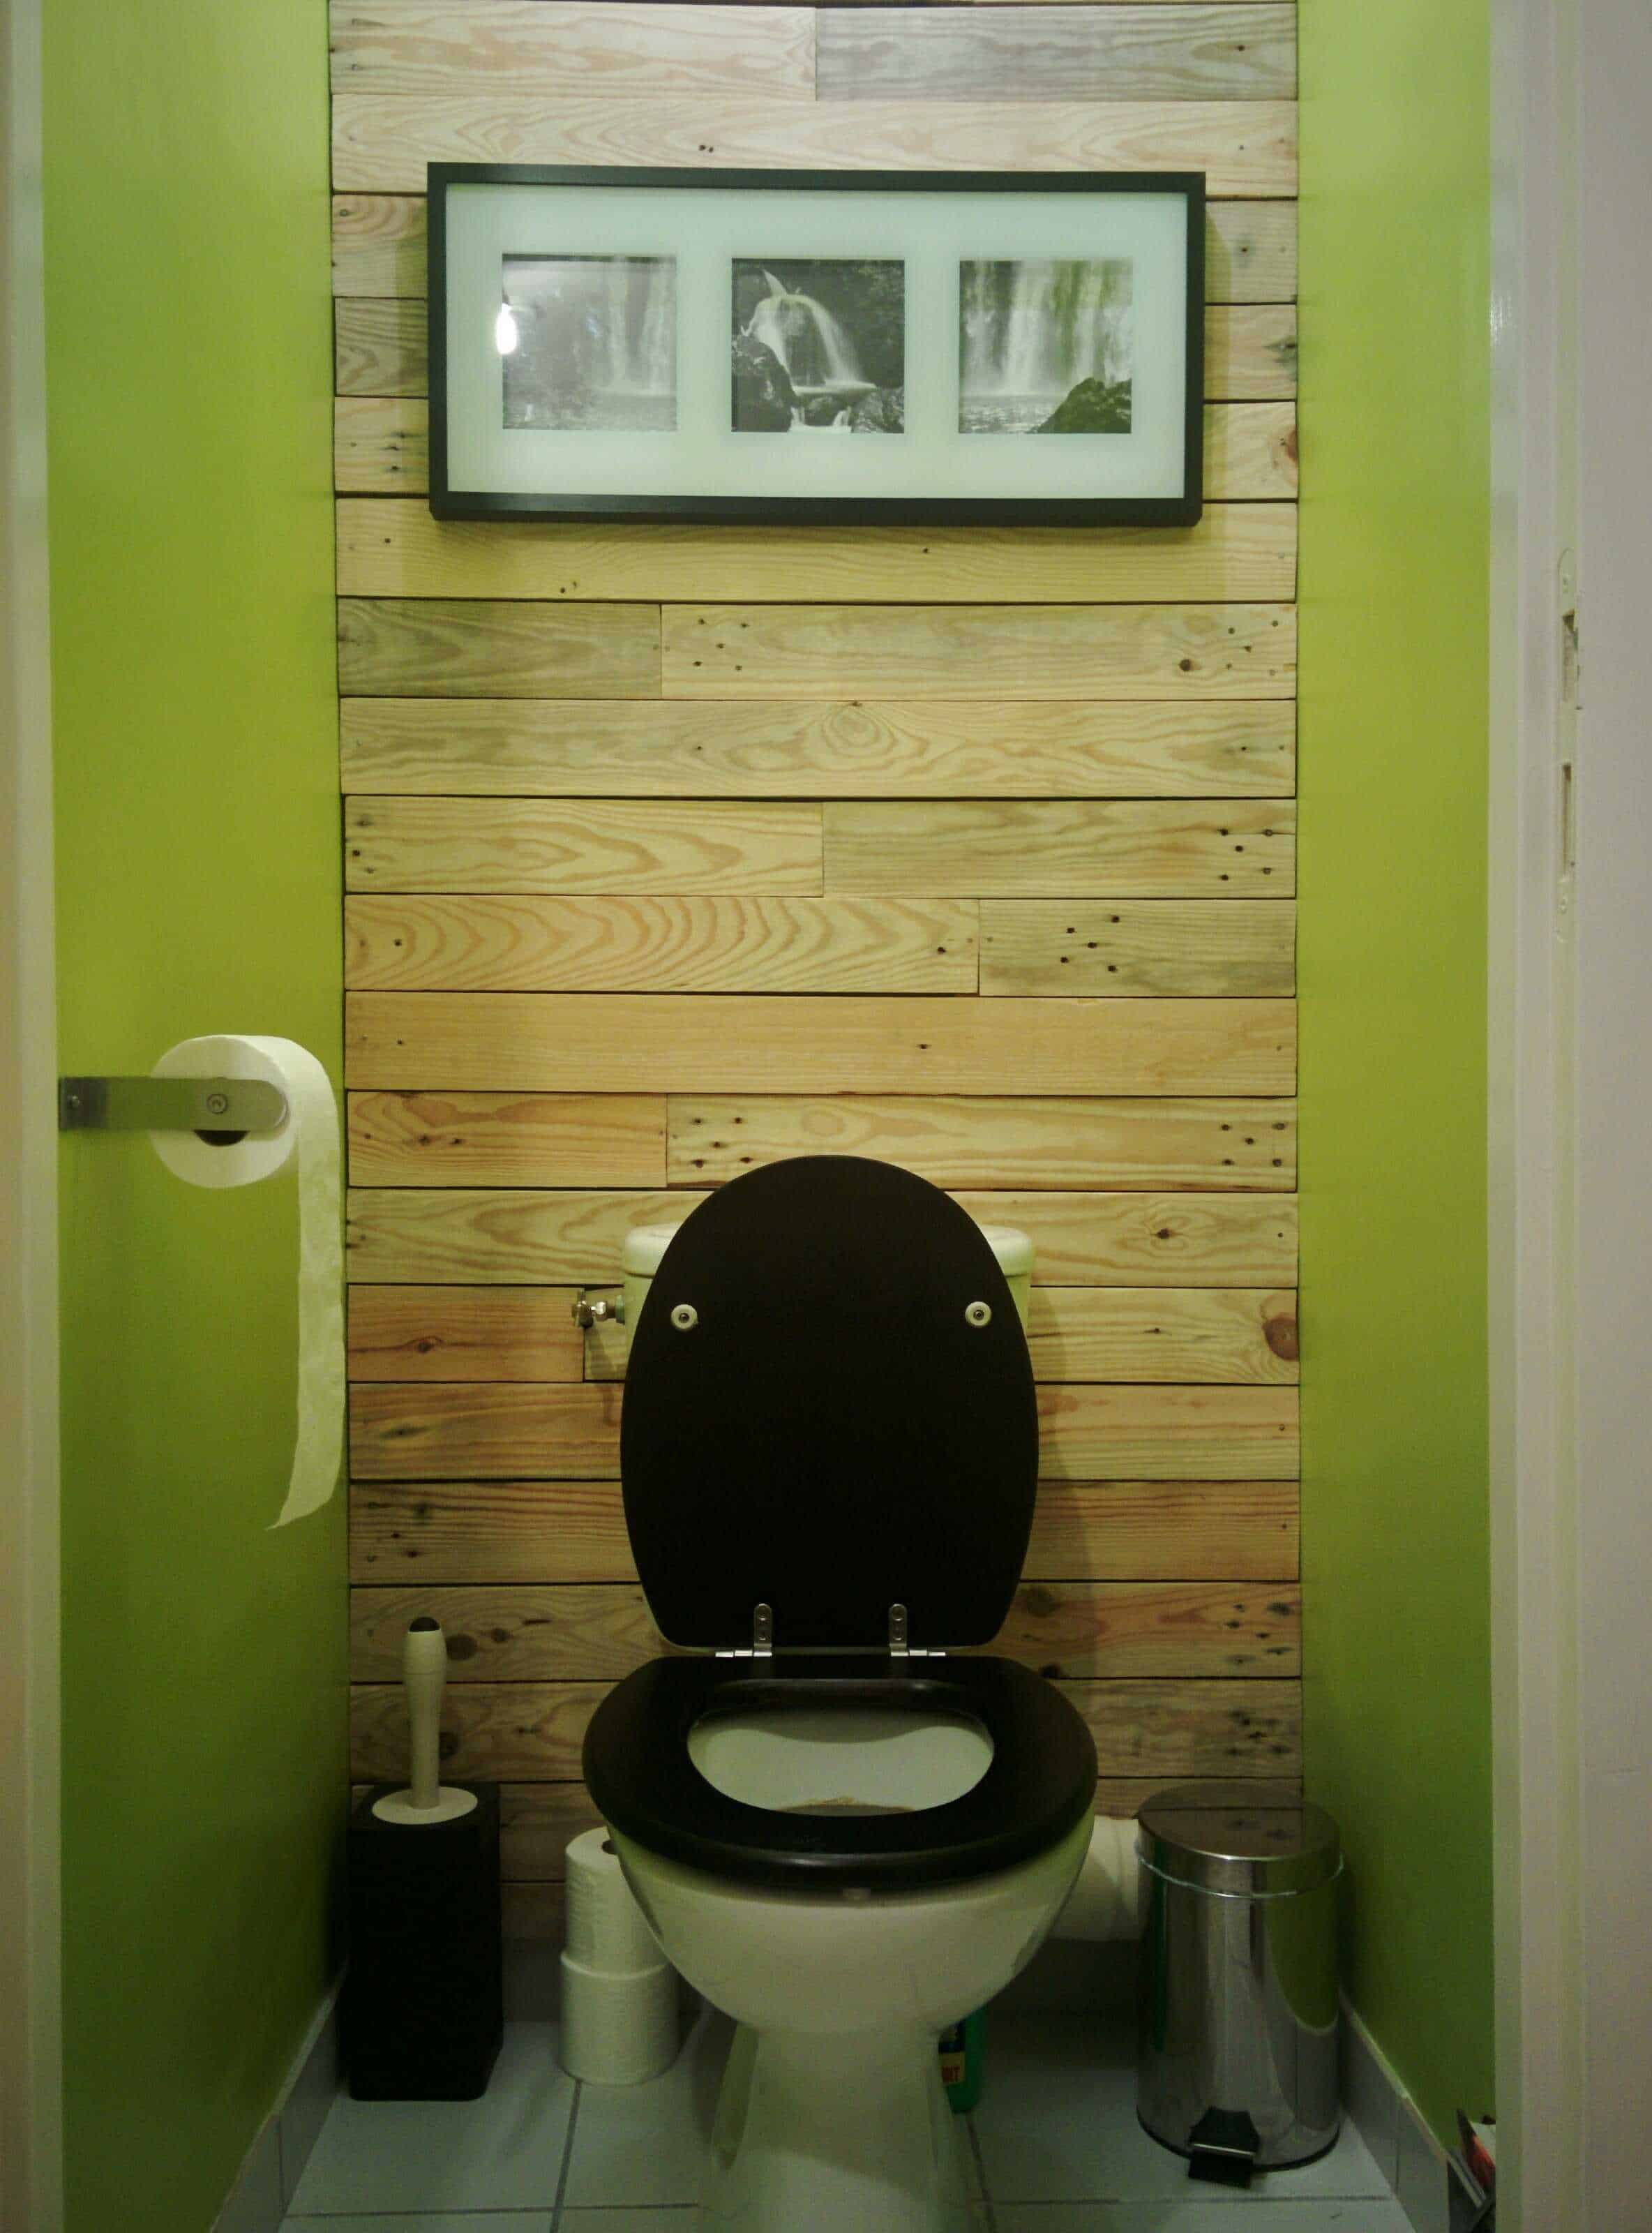 D coration de mur en bois de palettes toilet pallet wall decoration pallet ideas 1001 pallets - Decoration toilette ...